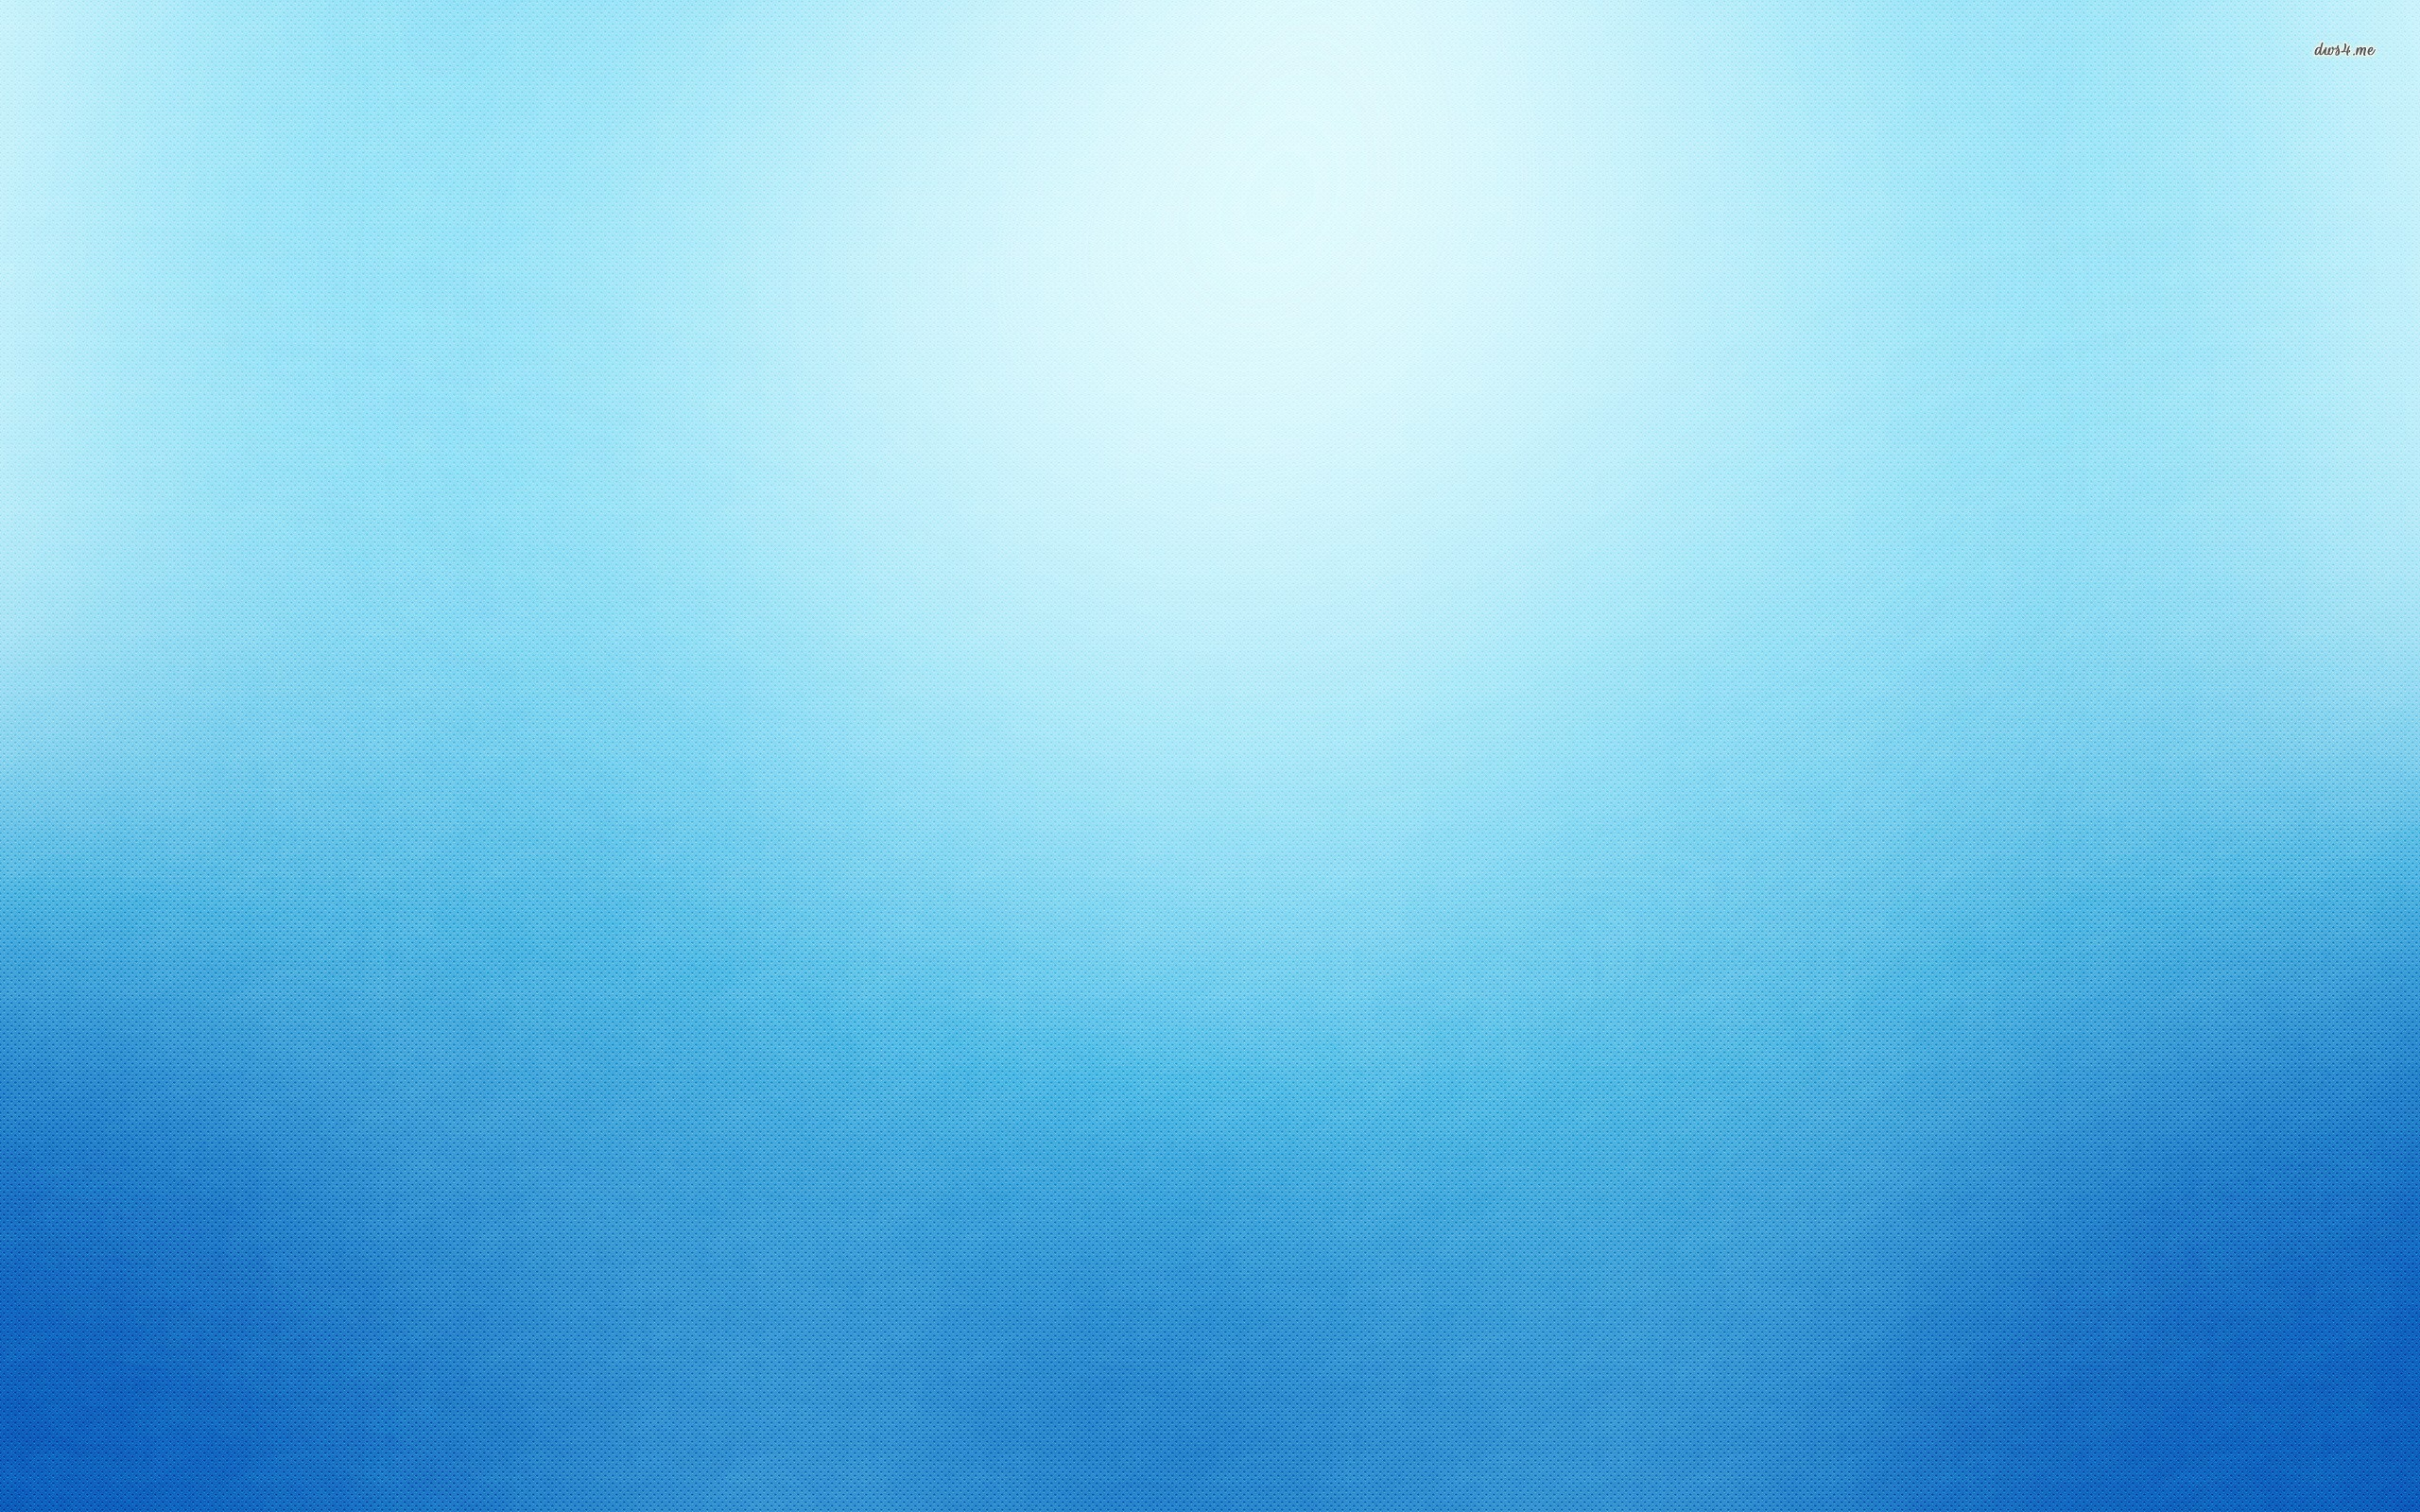 Plain blue background wallpaper for Blue wallpaper for walls